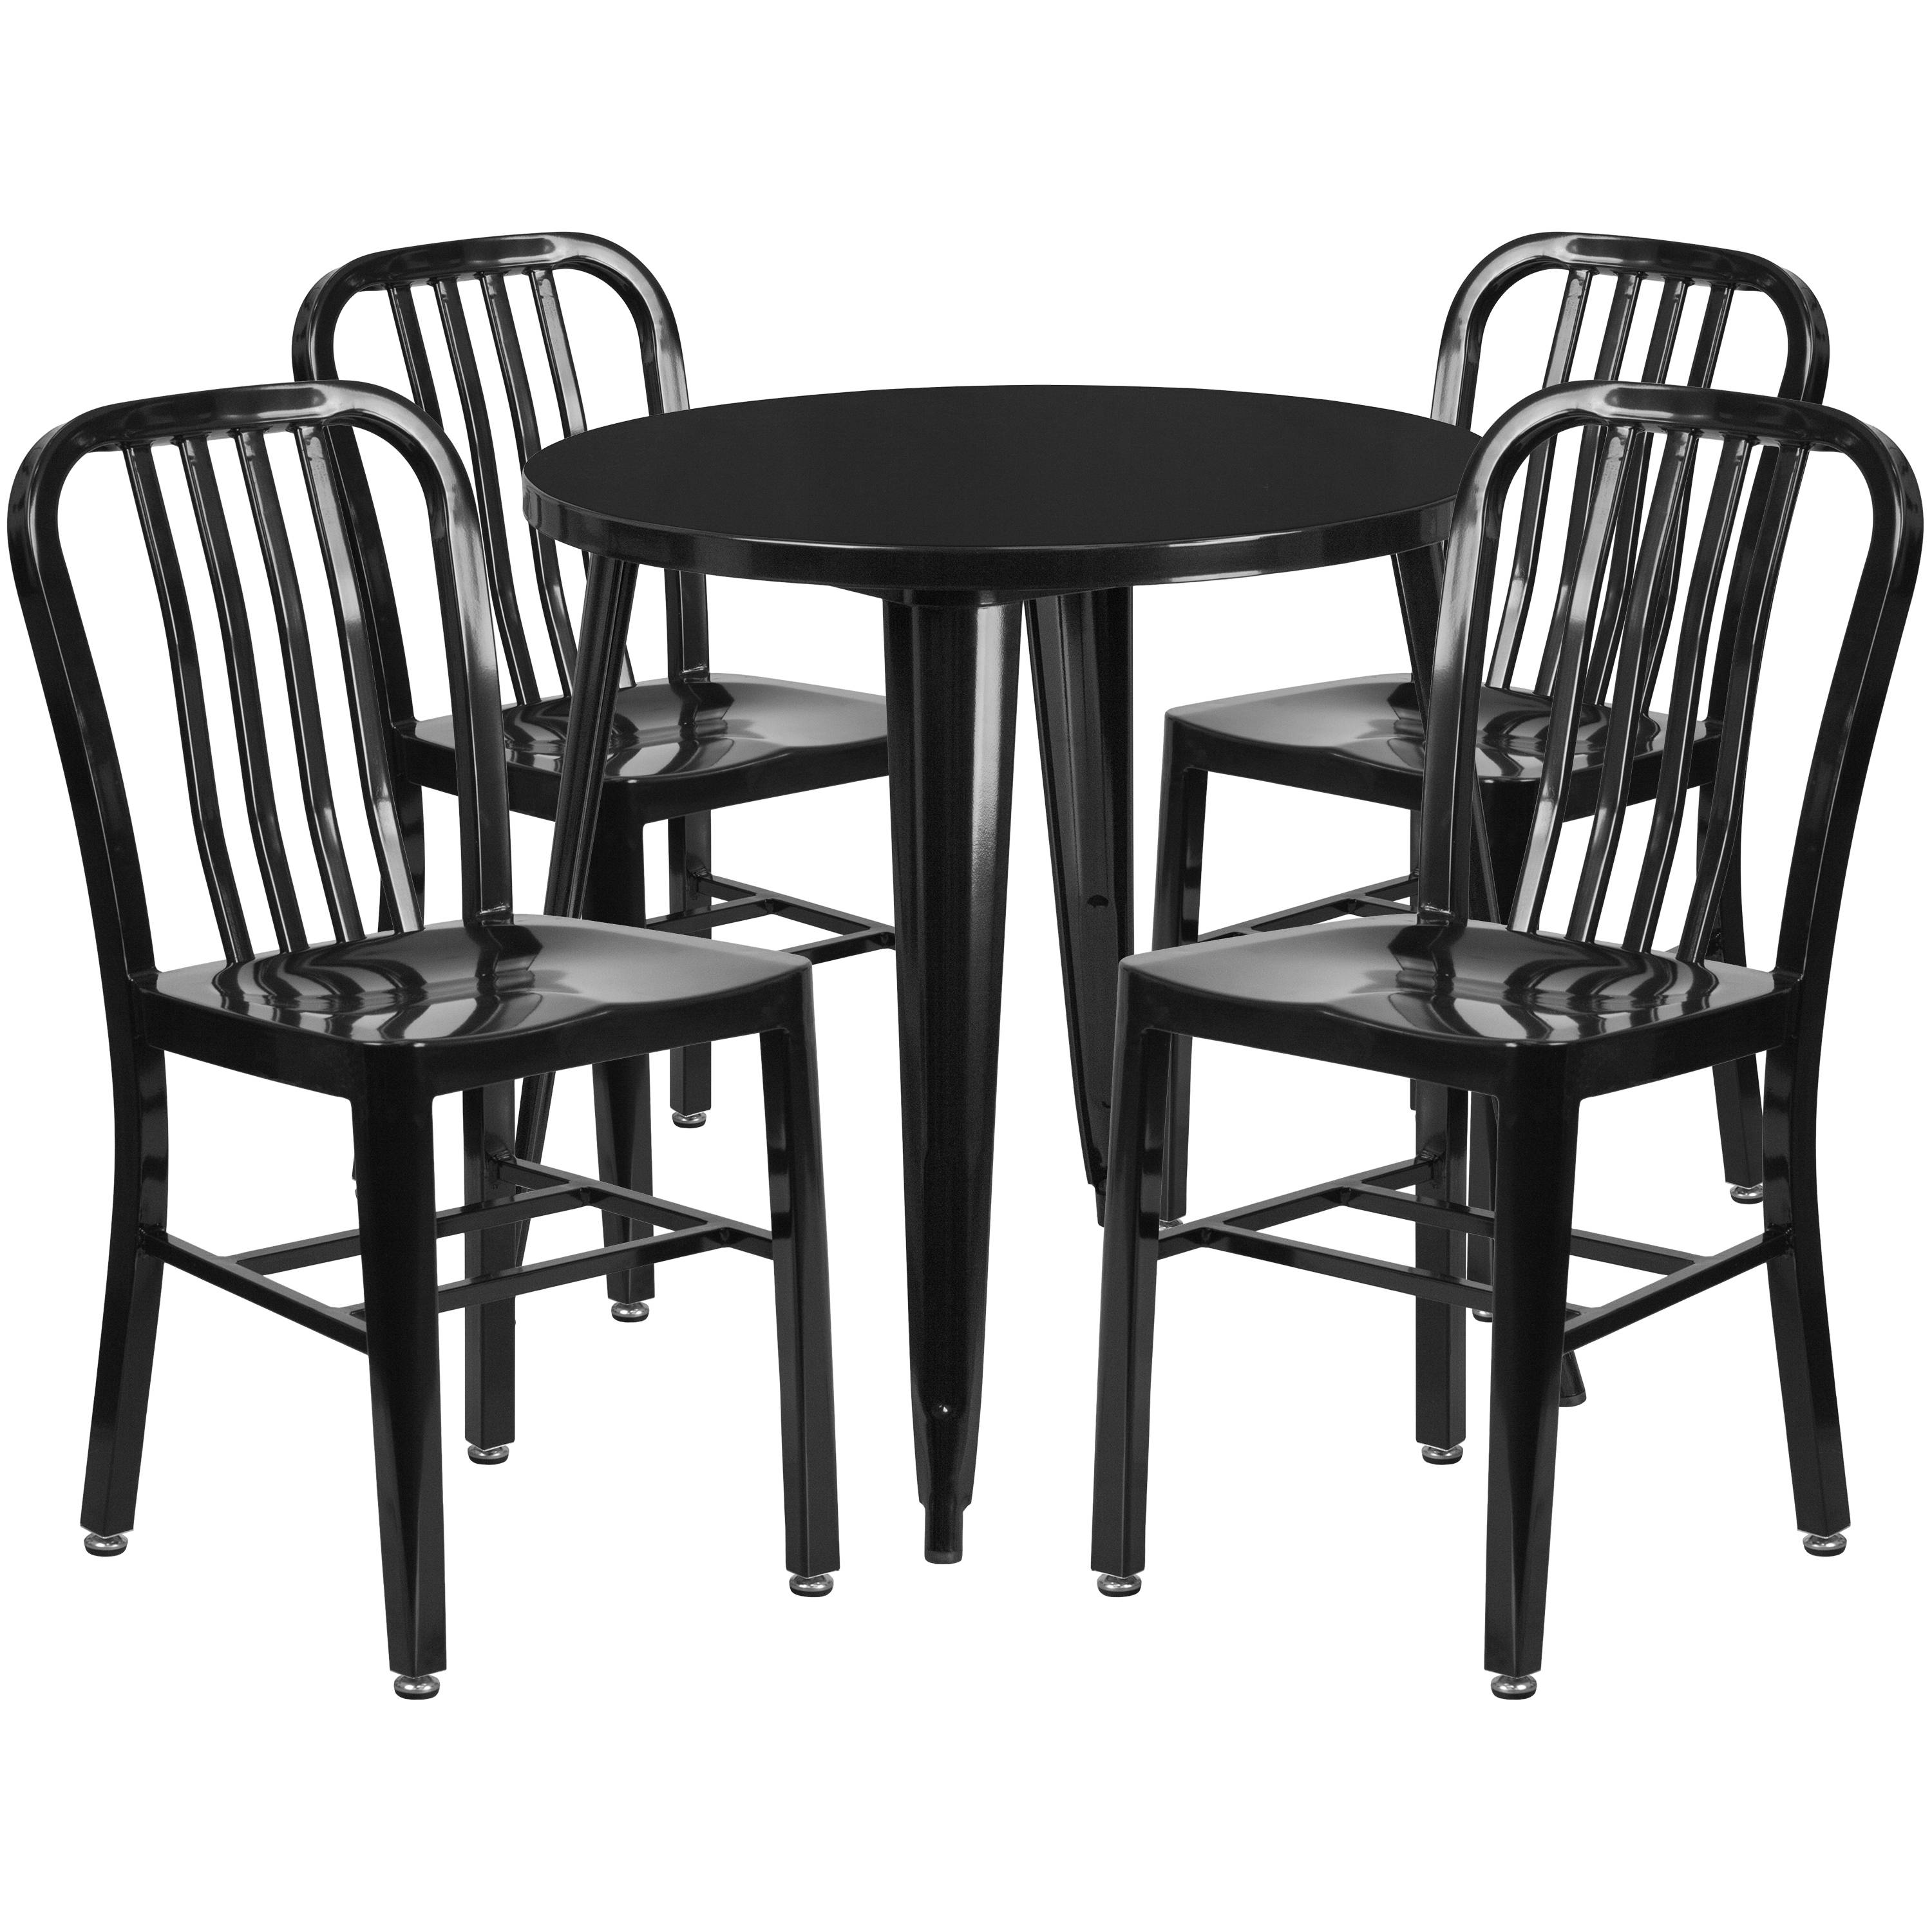 Flash Furniture Black Metal Indoor Outdoor Table Set With 4 Chairs Click To Enlarge